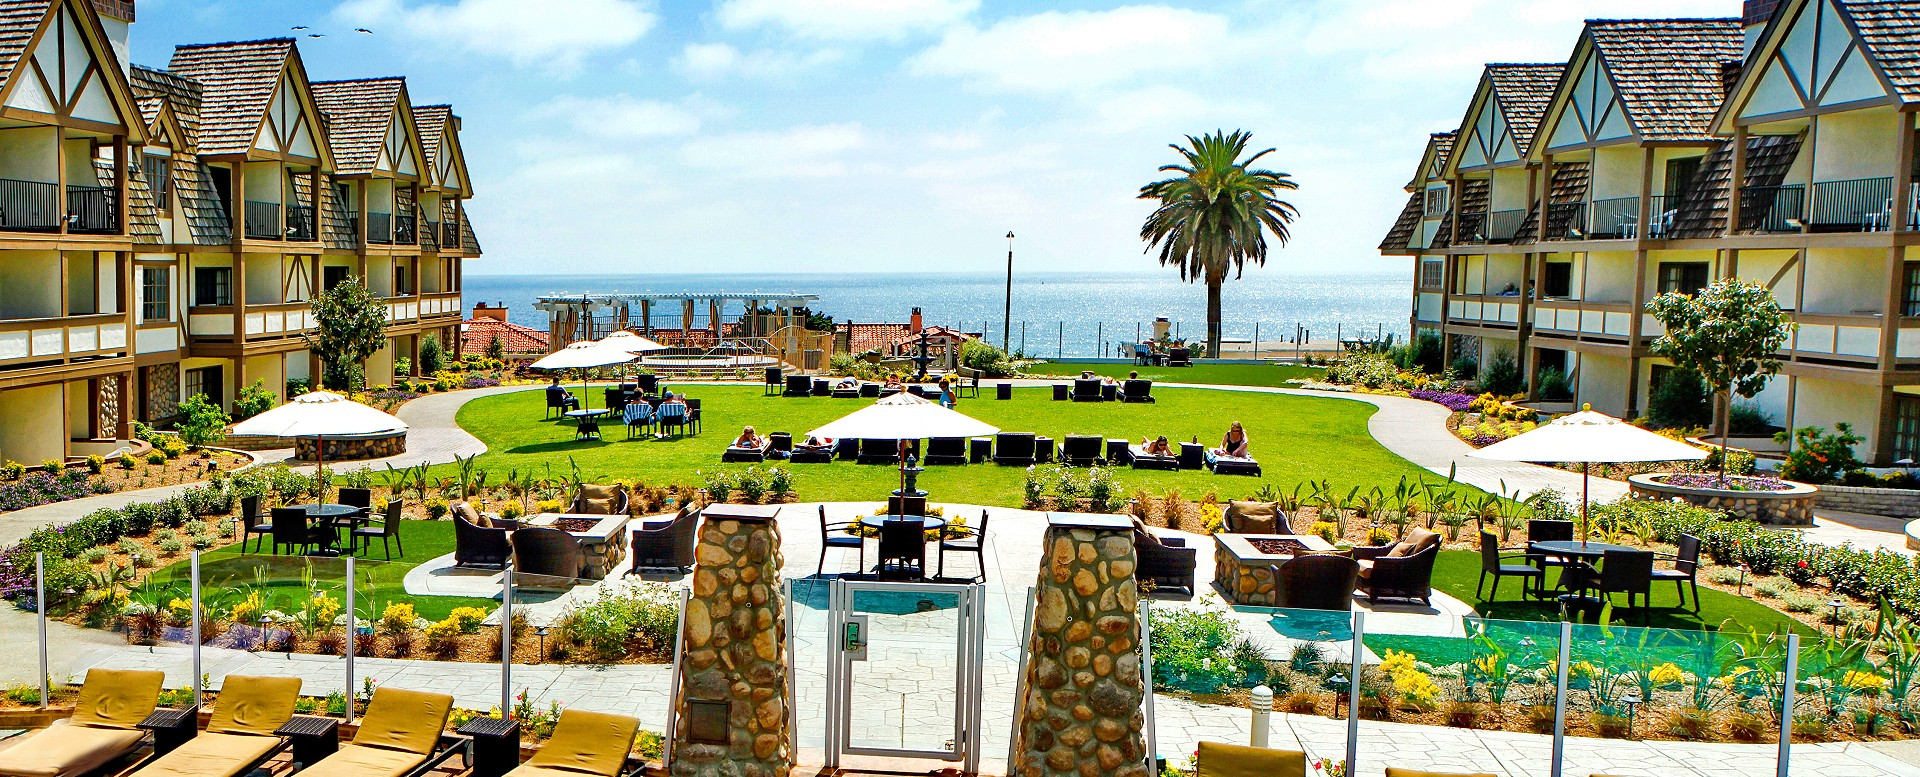 Carlsbad Inn Beach Resort Firepit And Ocean View